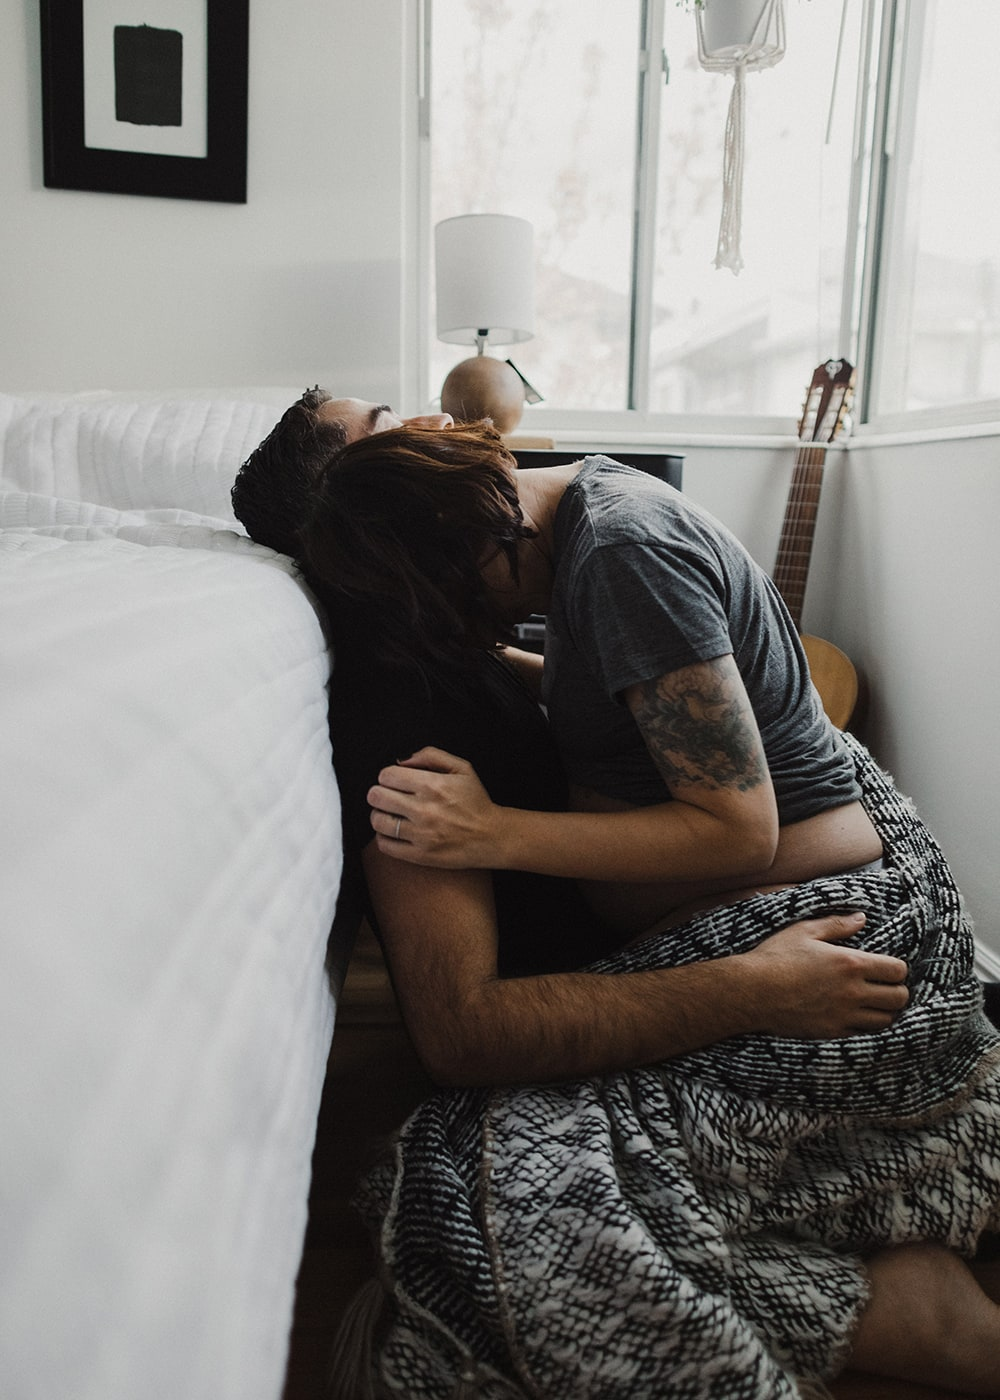 man and woman cuddling while woman's head sits on his shoulder